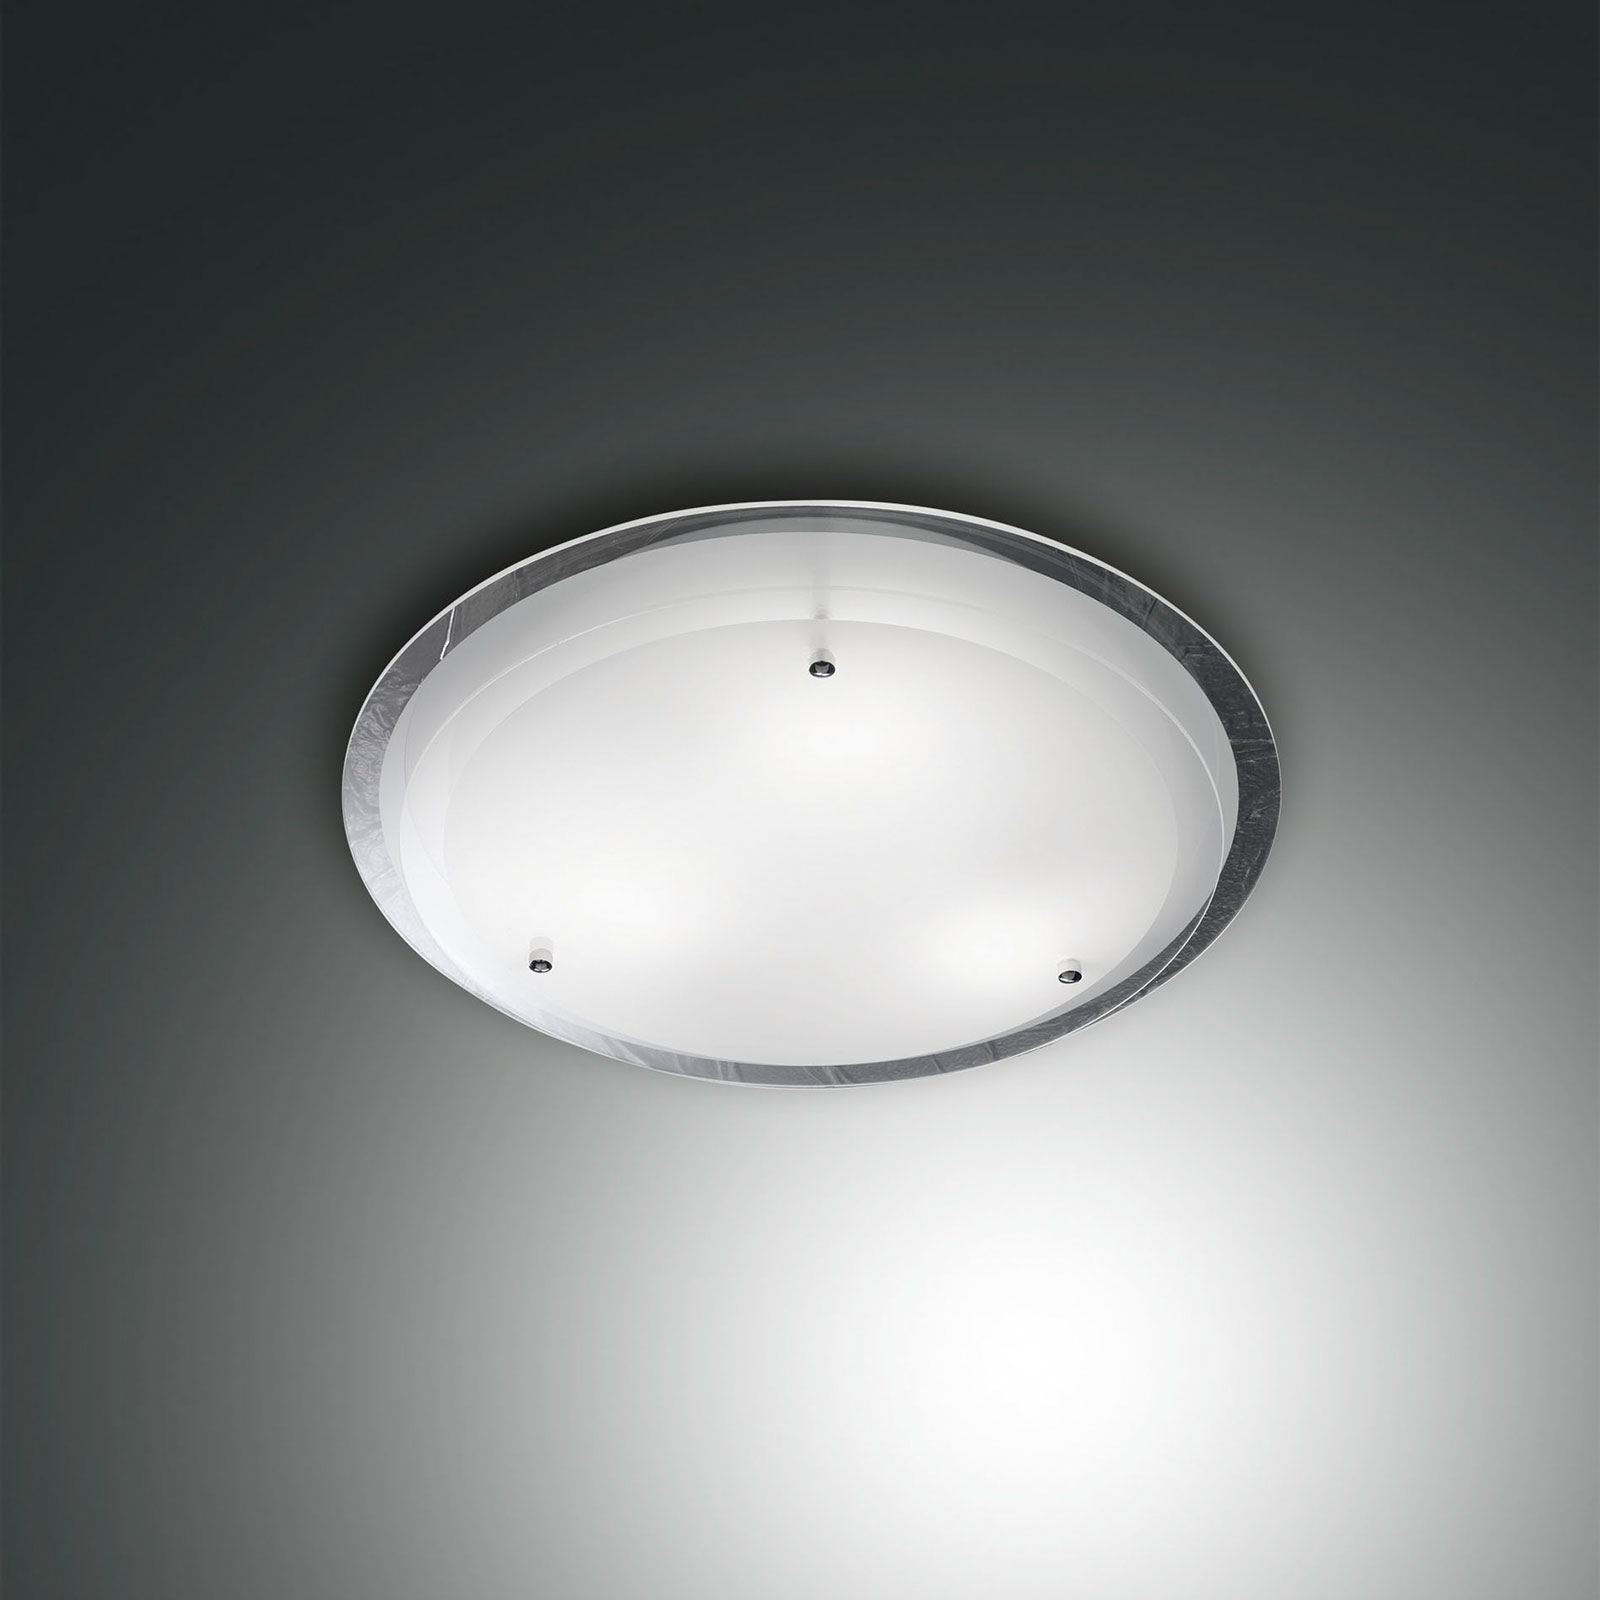 Hill Ceiling Light with Glass Timeless_3502018_1